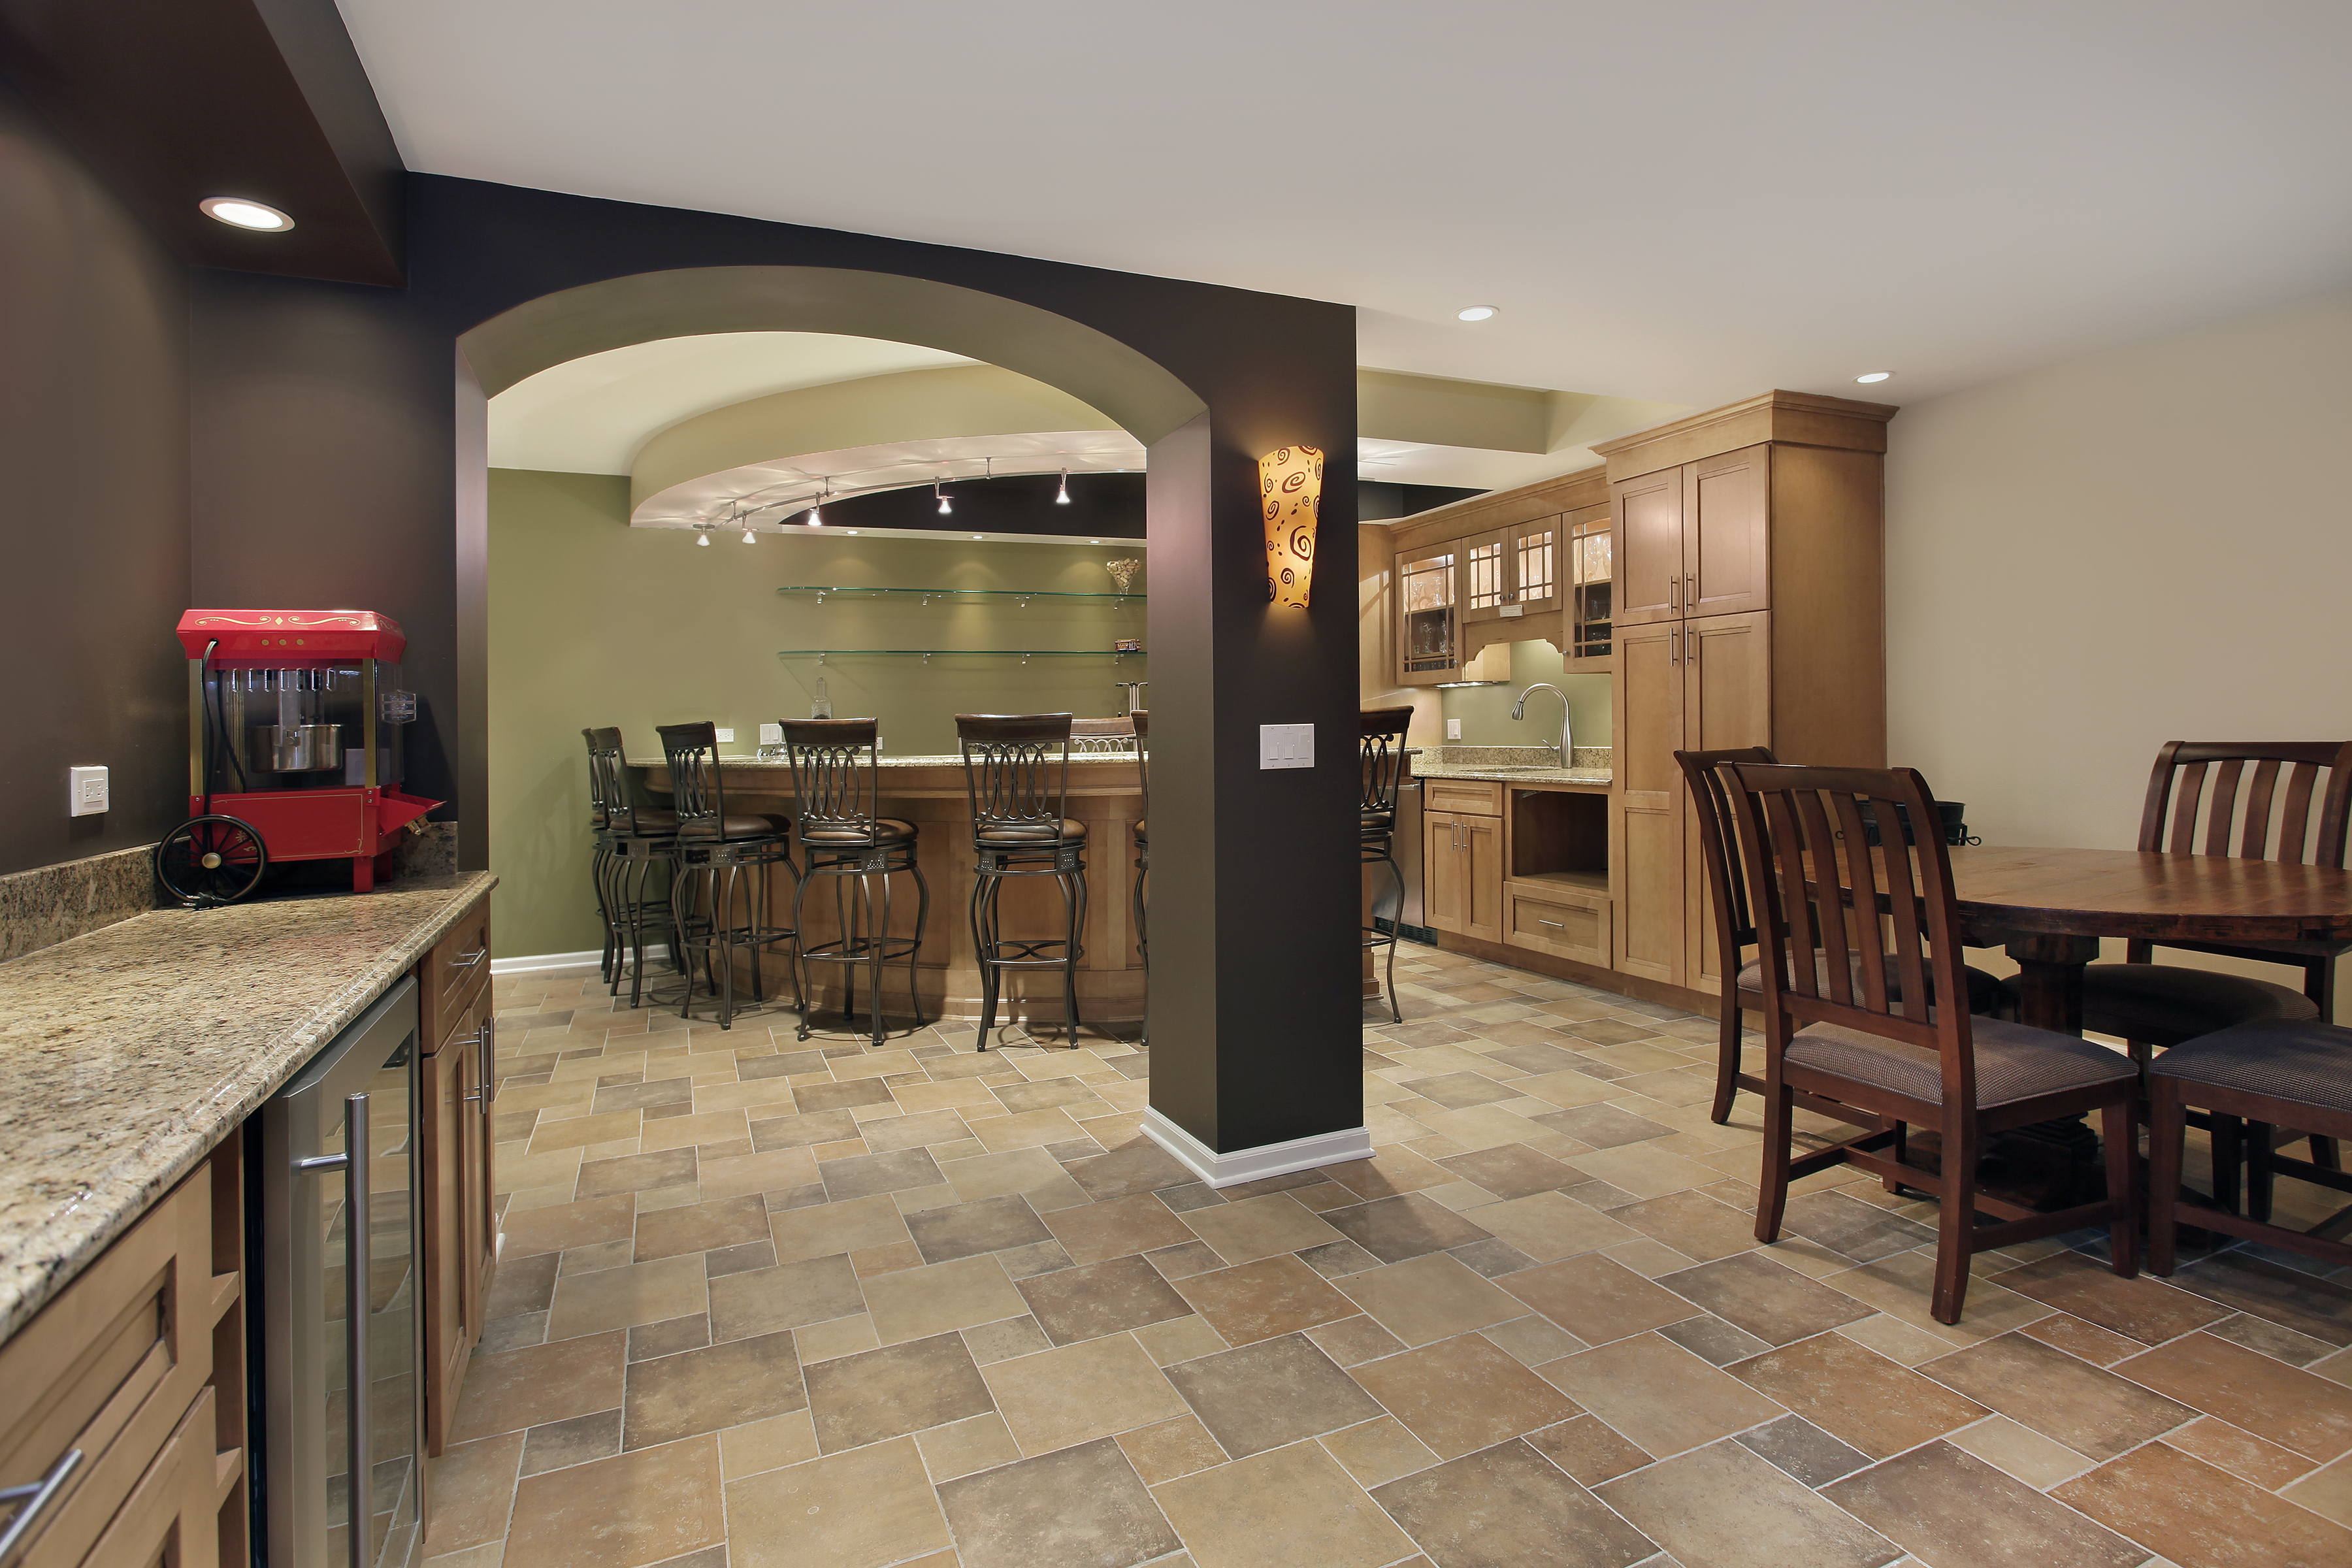 Stone Tile Flooring in Little Rock, AR